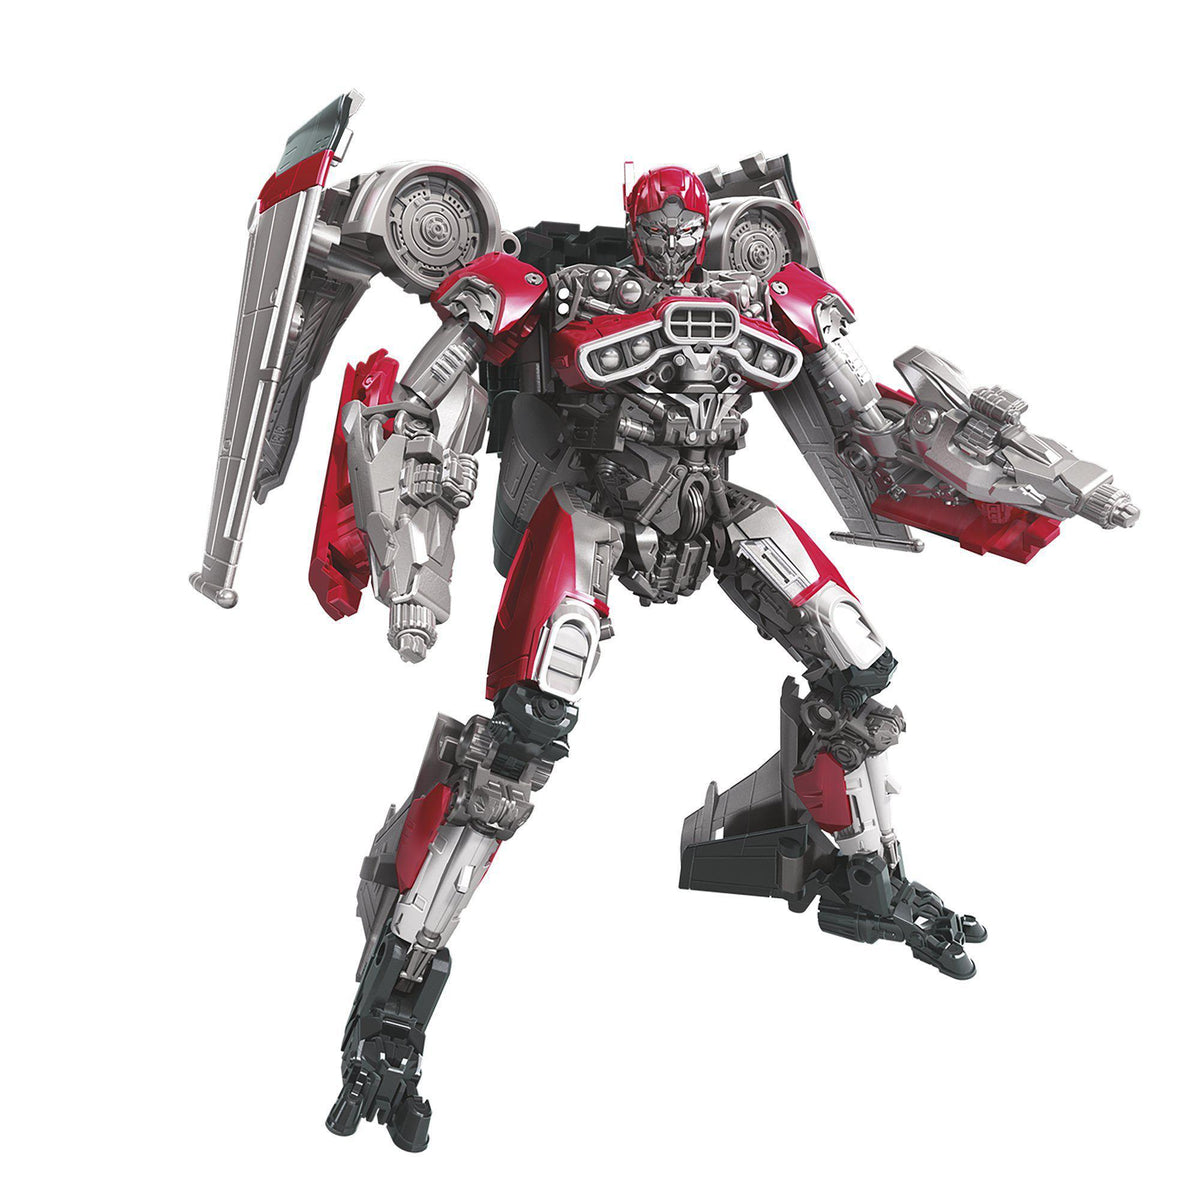 TRANSFORMERS GENERATIONS STUDIO SERIES - SHATTER ACTION FIGURE